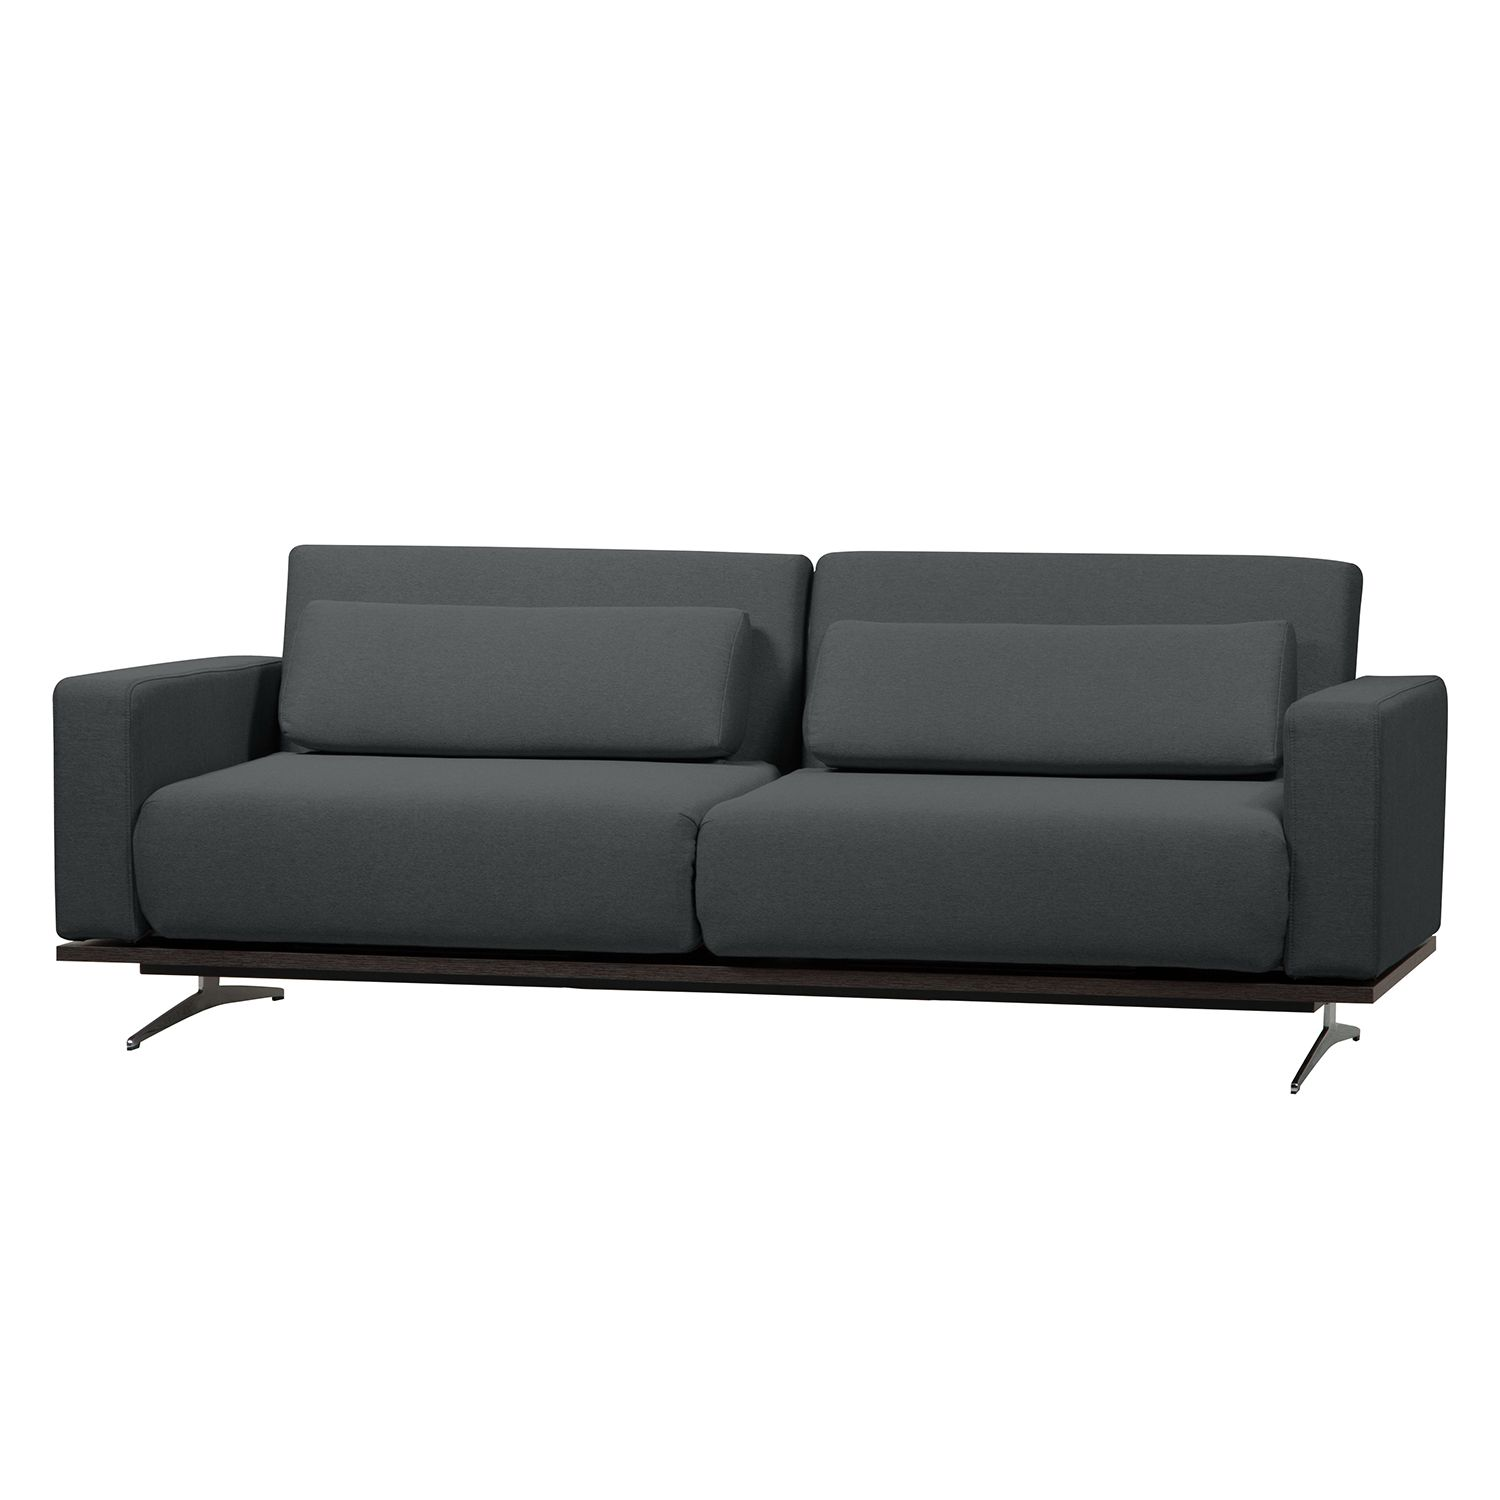 Schlafsofa Copperfield I Webstoff - Webstoff - Stoff Zahira: Anthrazit